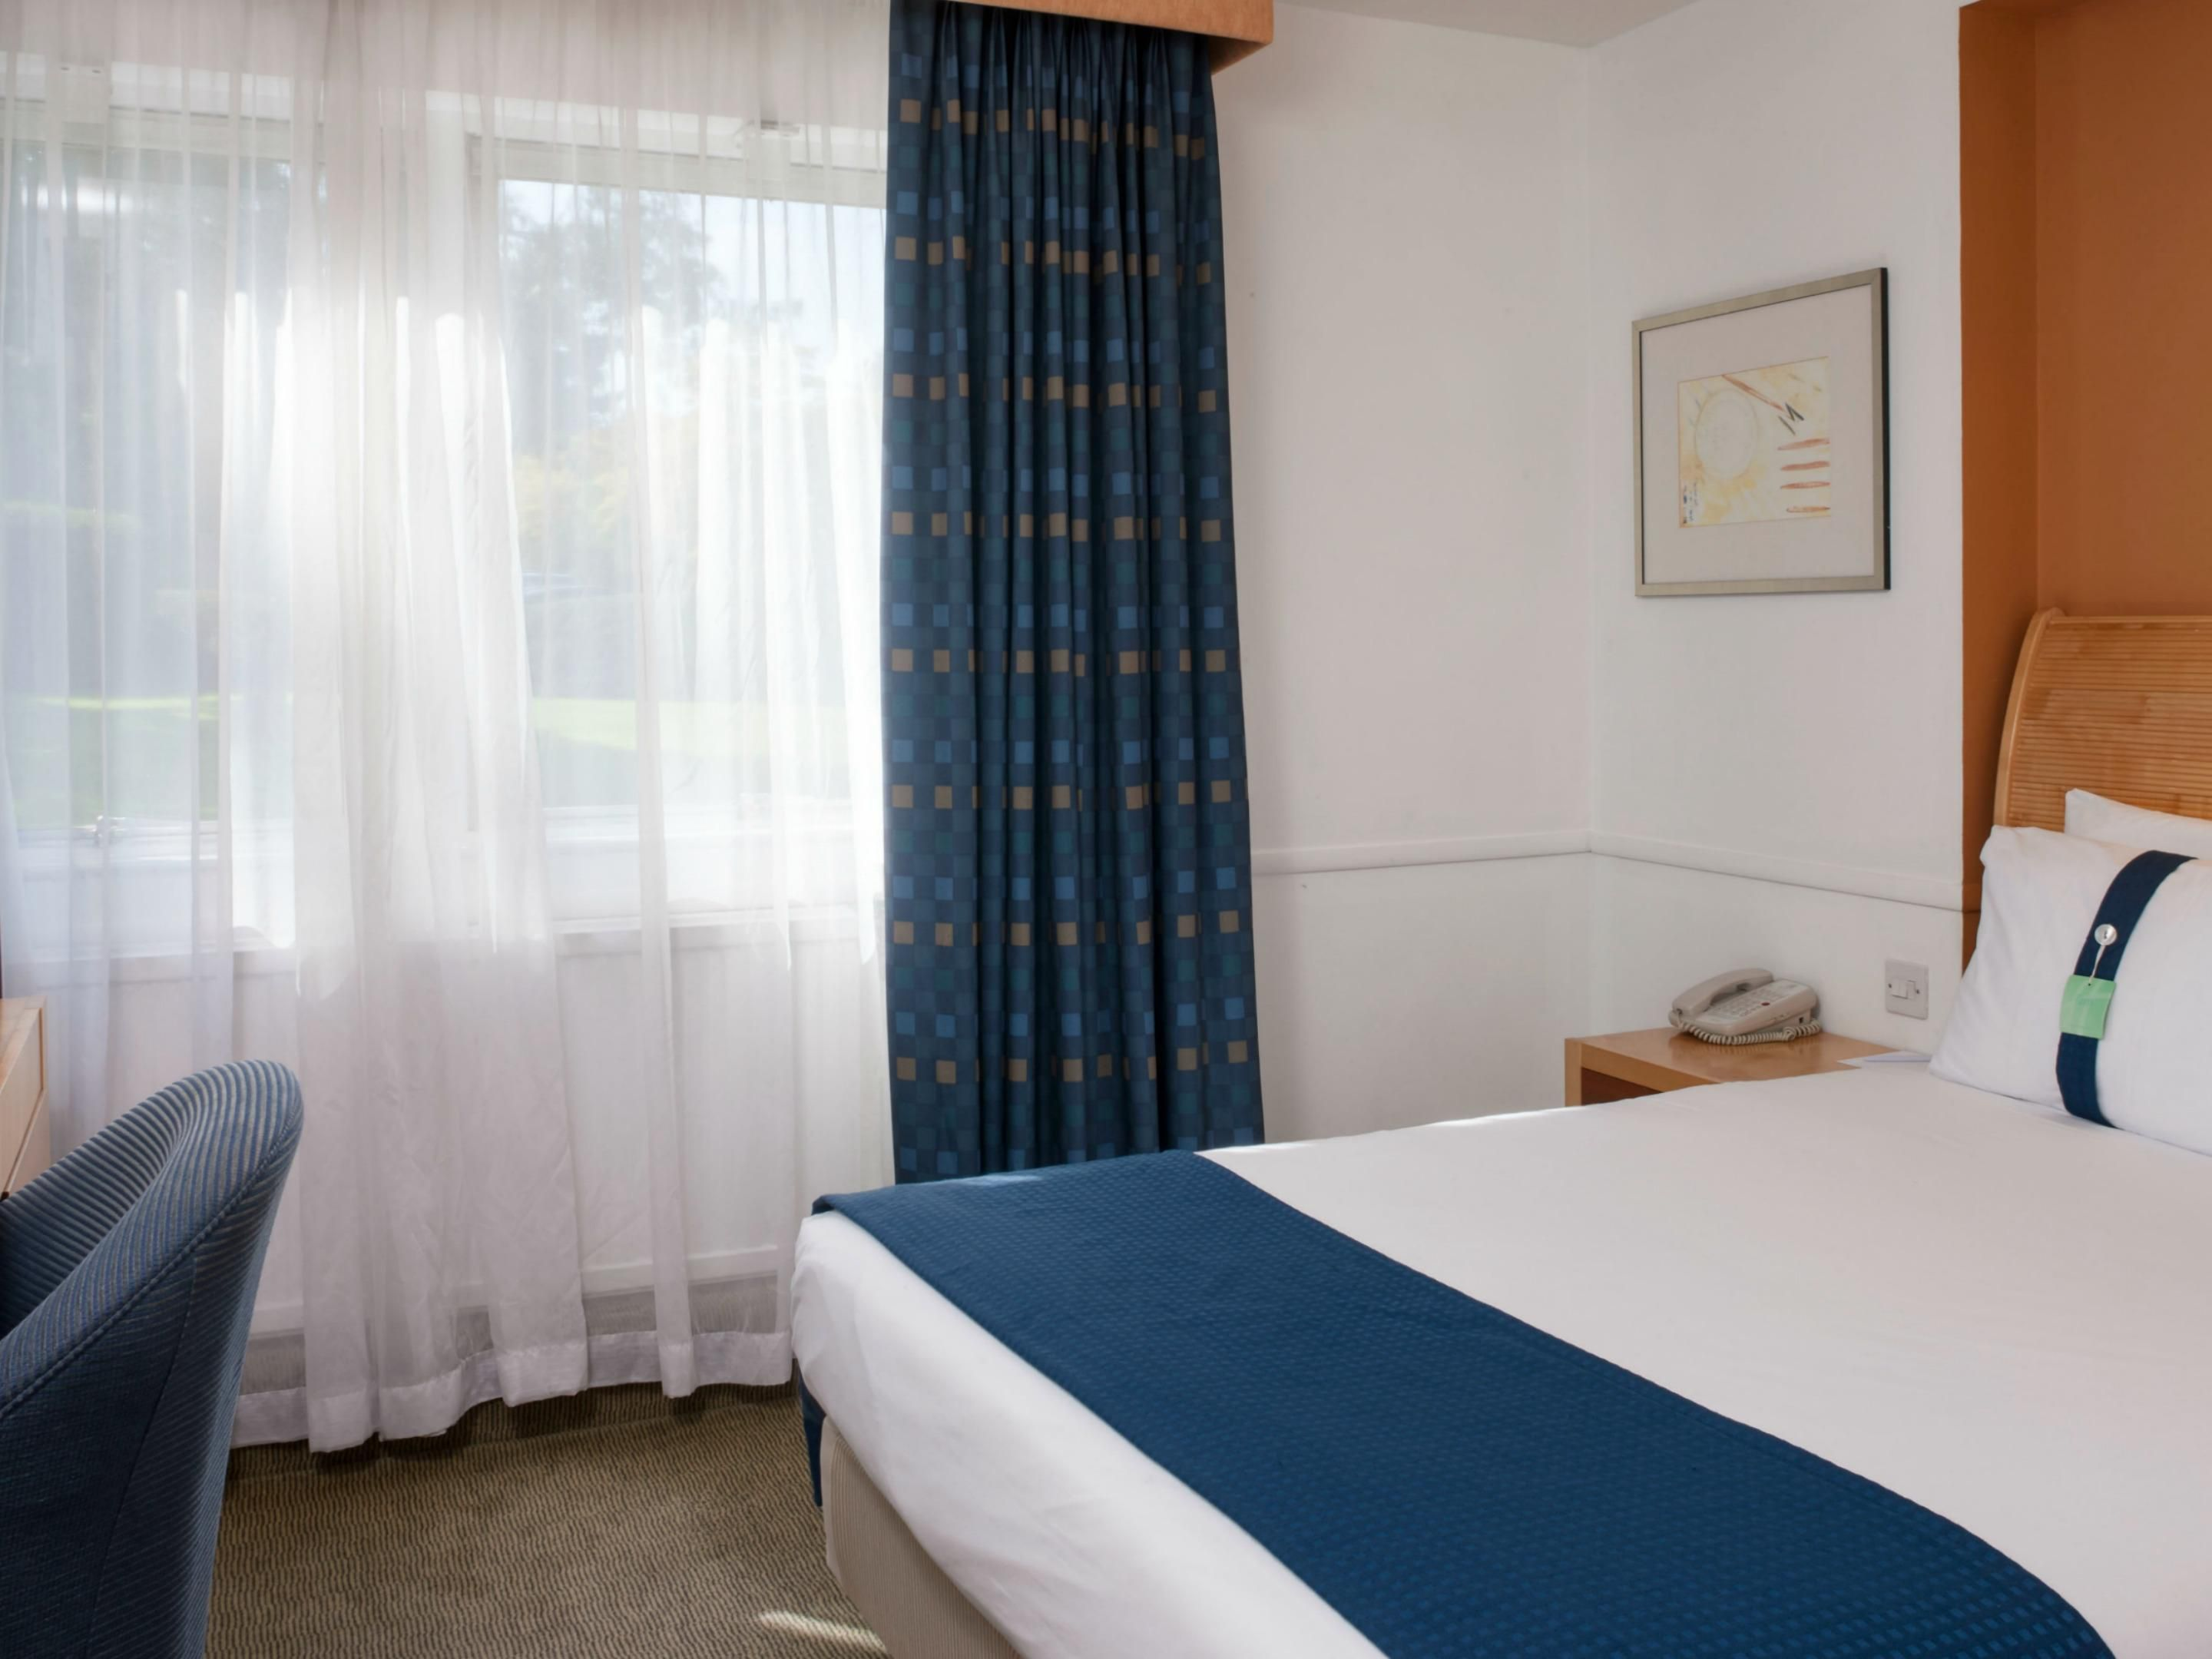 Sleep well in one of our spacious double rooms